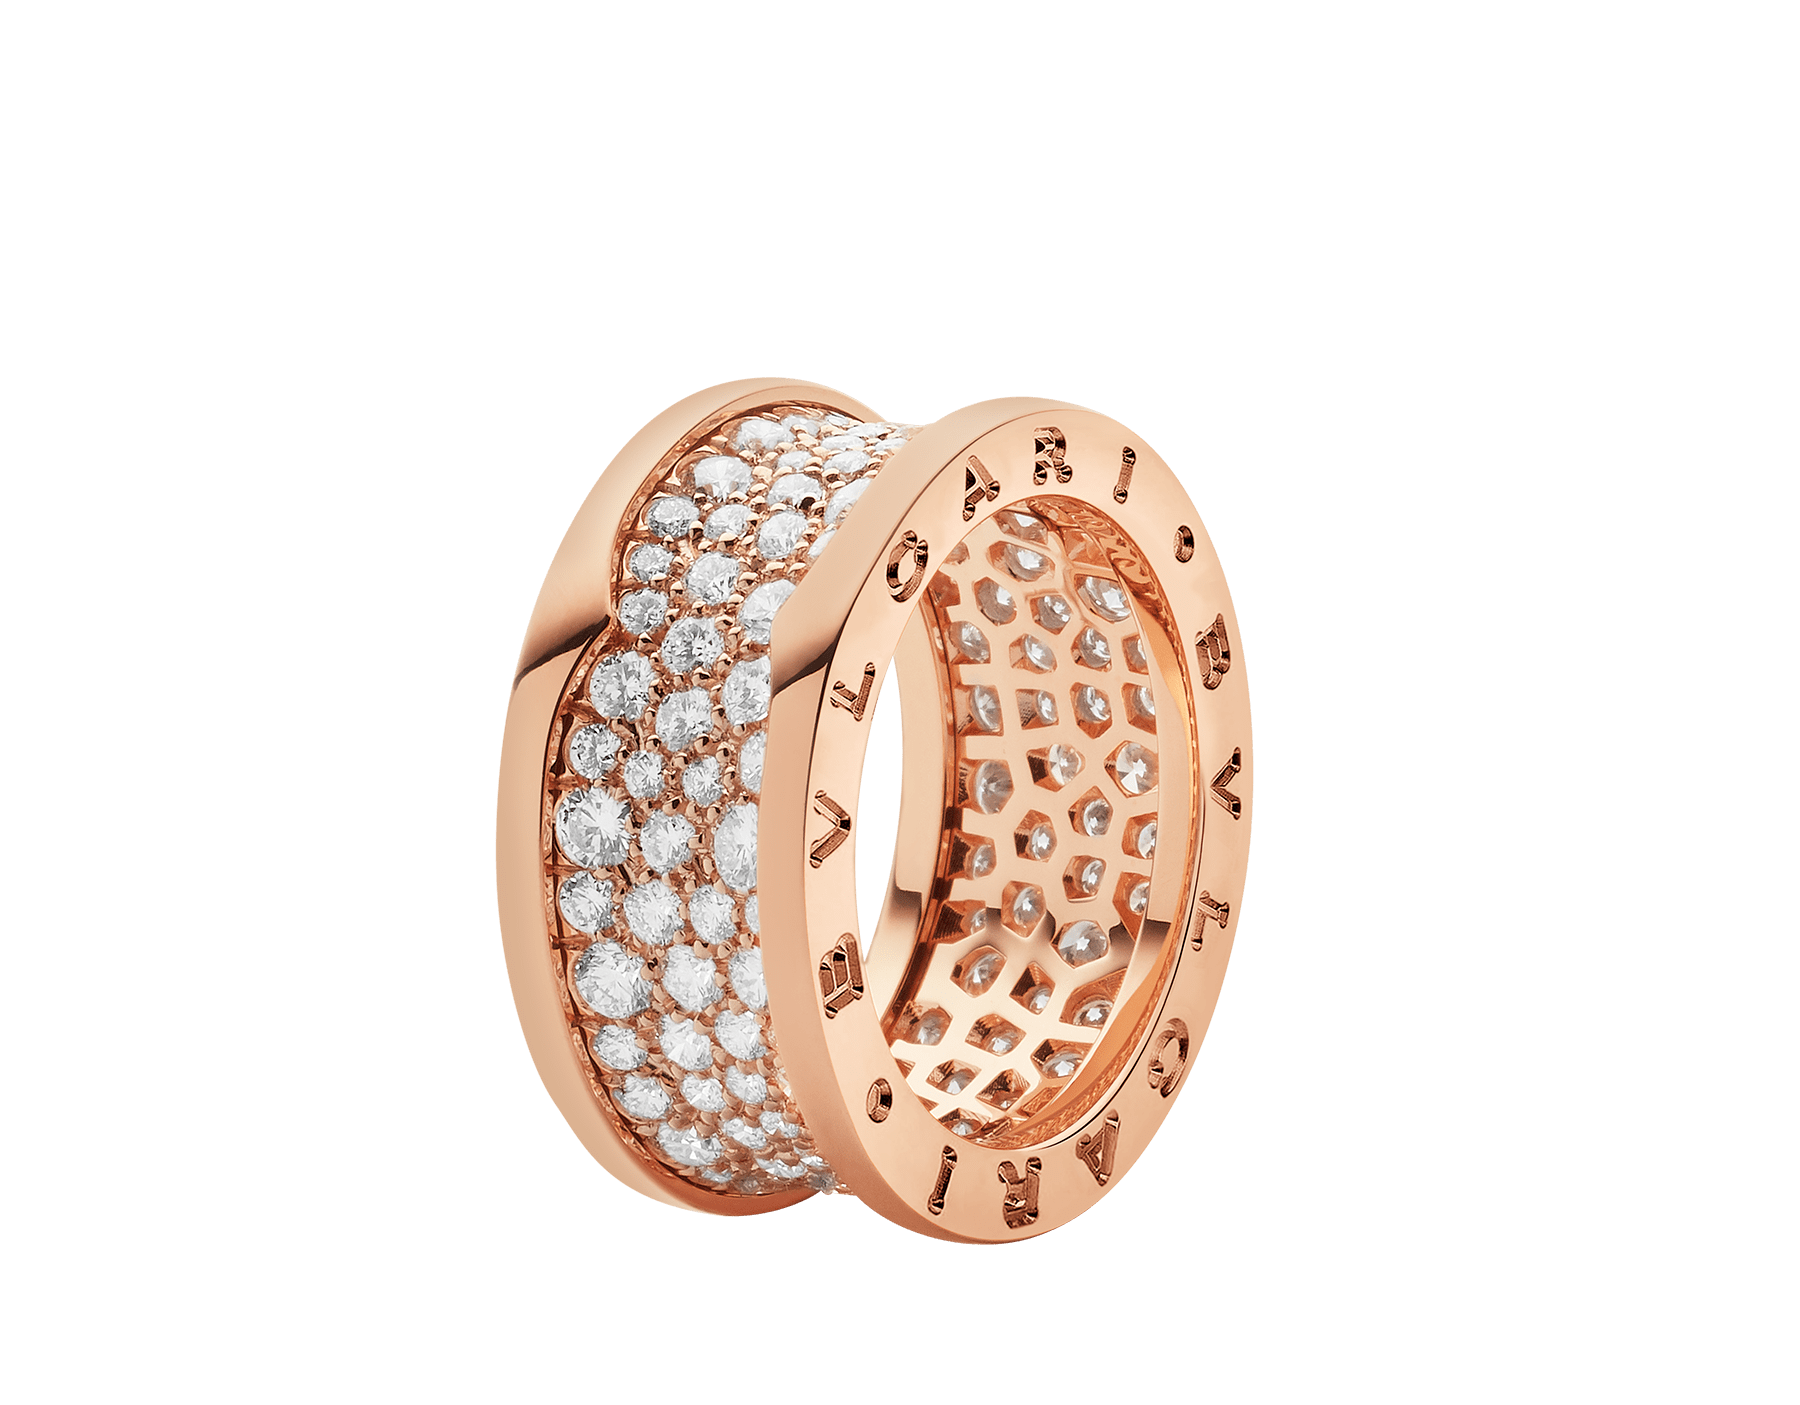 B.zero1 ring in 18 kt rose gold, set with pavé diamonds on the spiral. AN855553 image 1